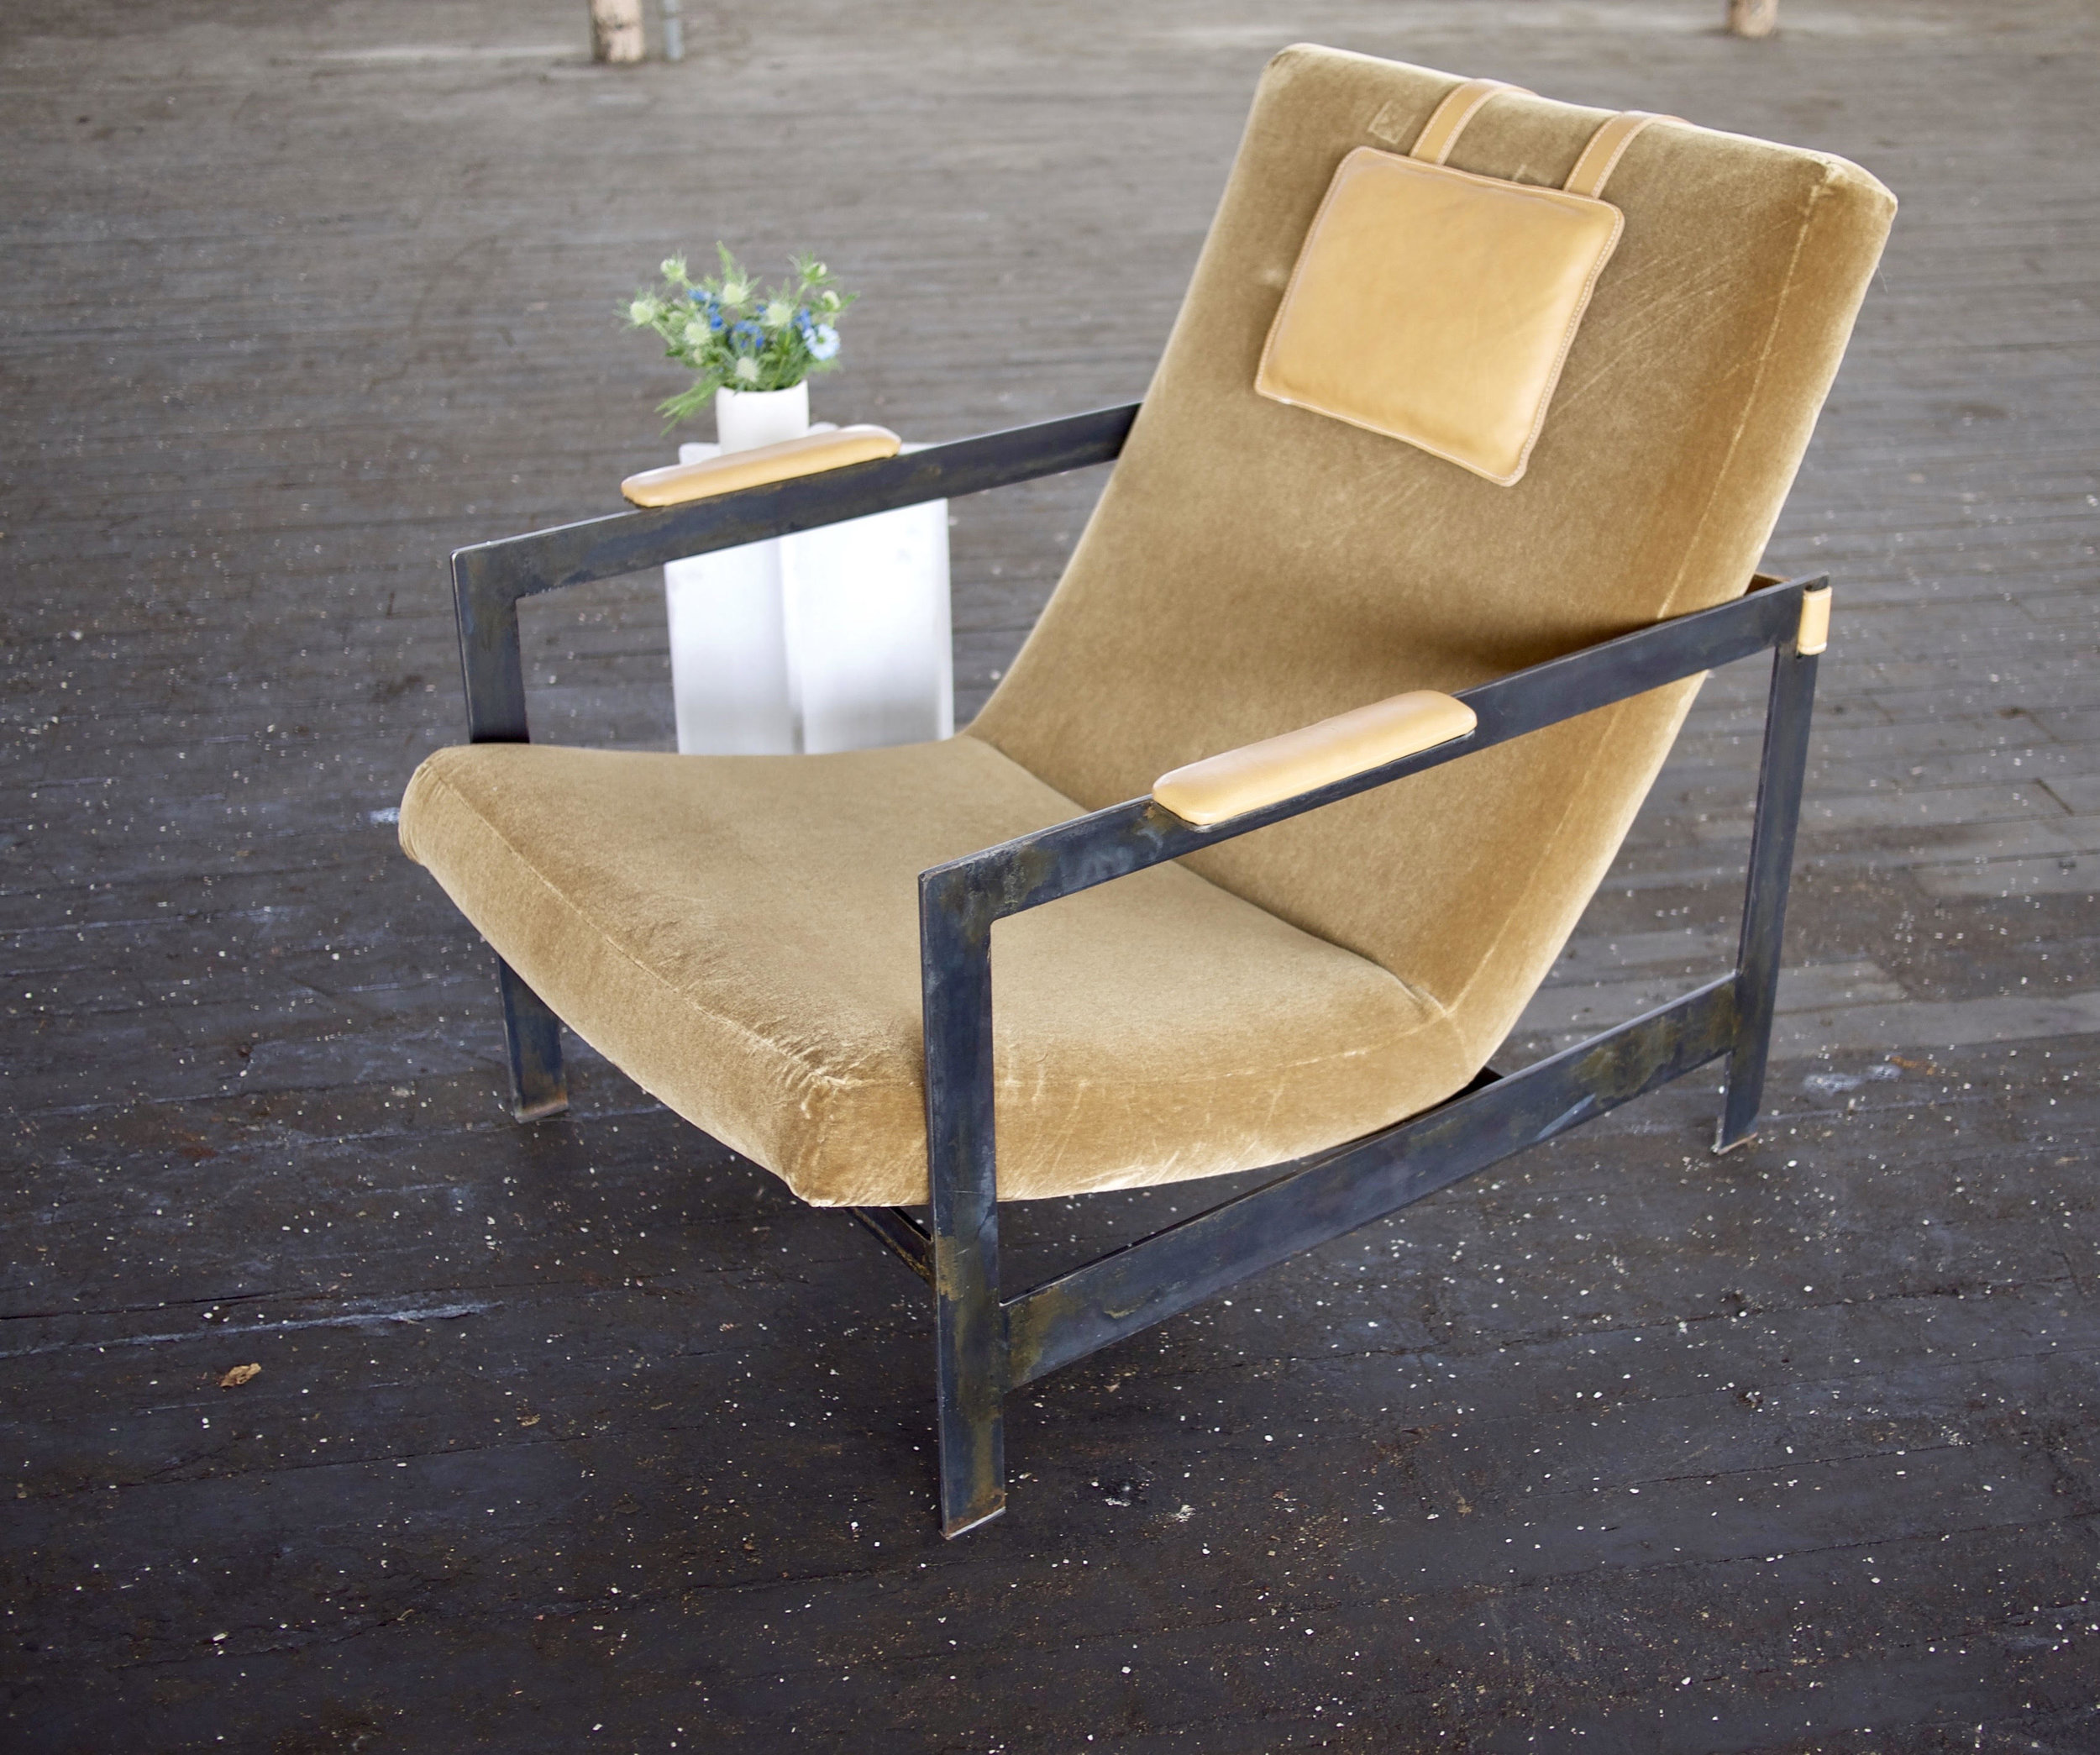 Linix Chair  Steel frame, COM